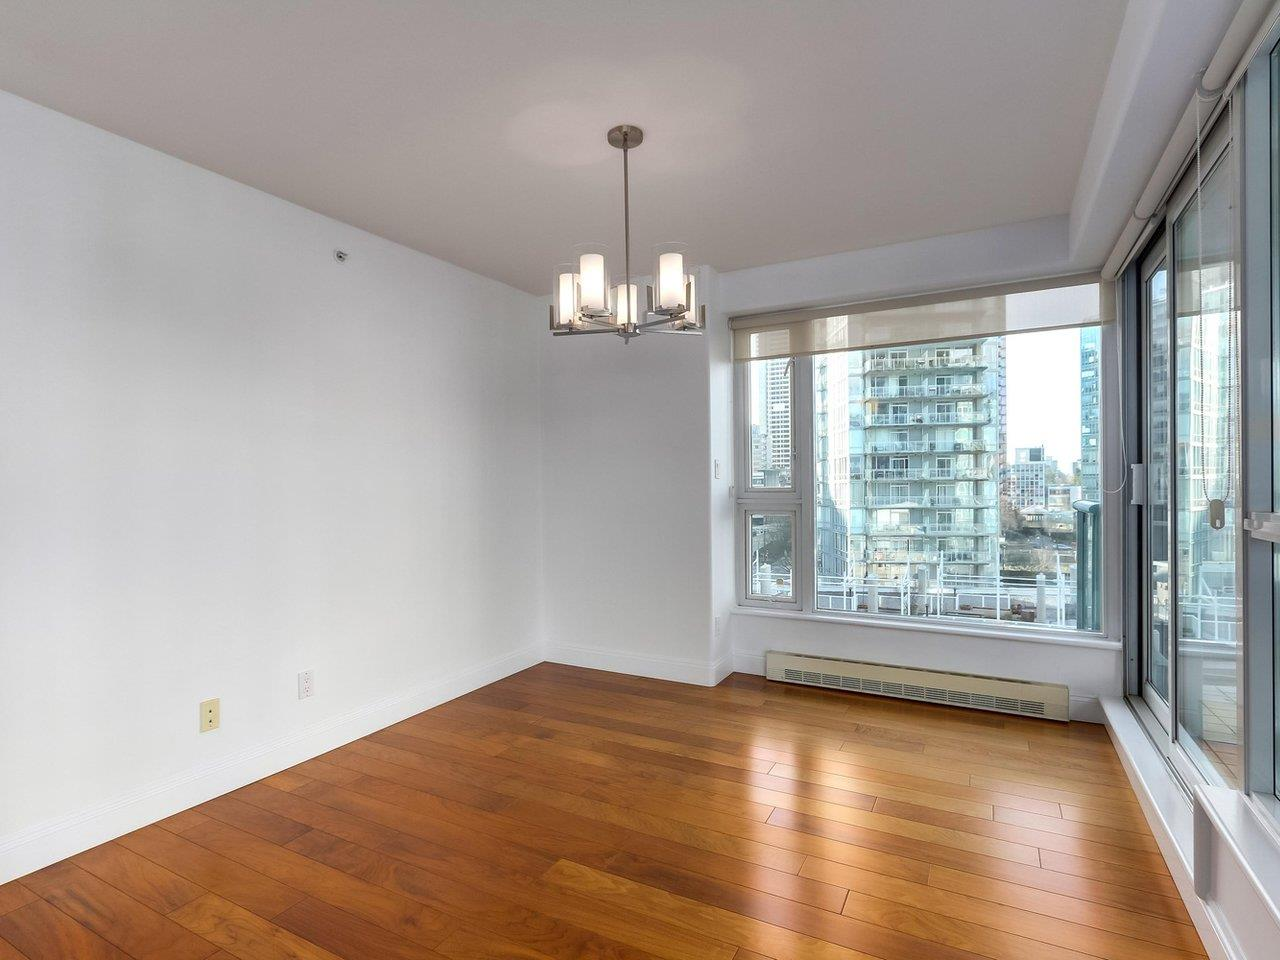 1101 535 NICOLA STREET - Coal Harbour Apartment/Condo for sale, 2 Bedrooms (R2331656) - #9